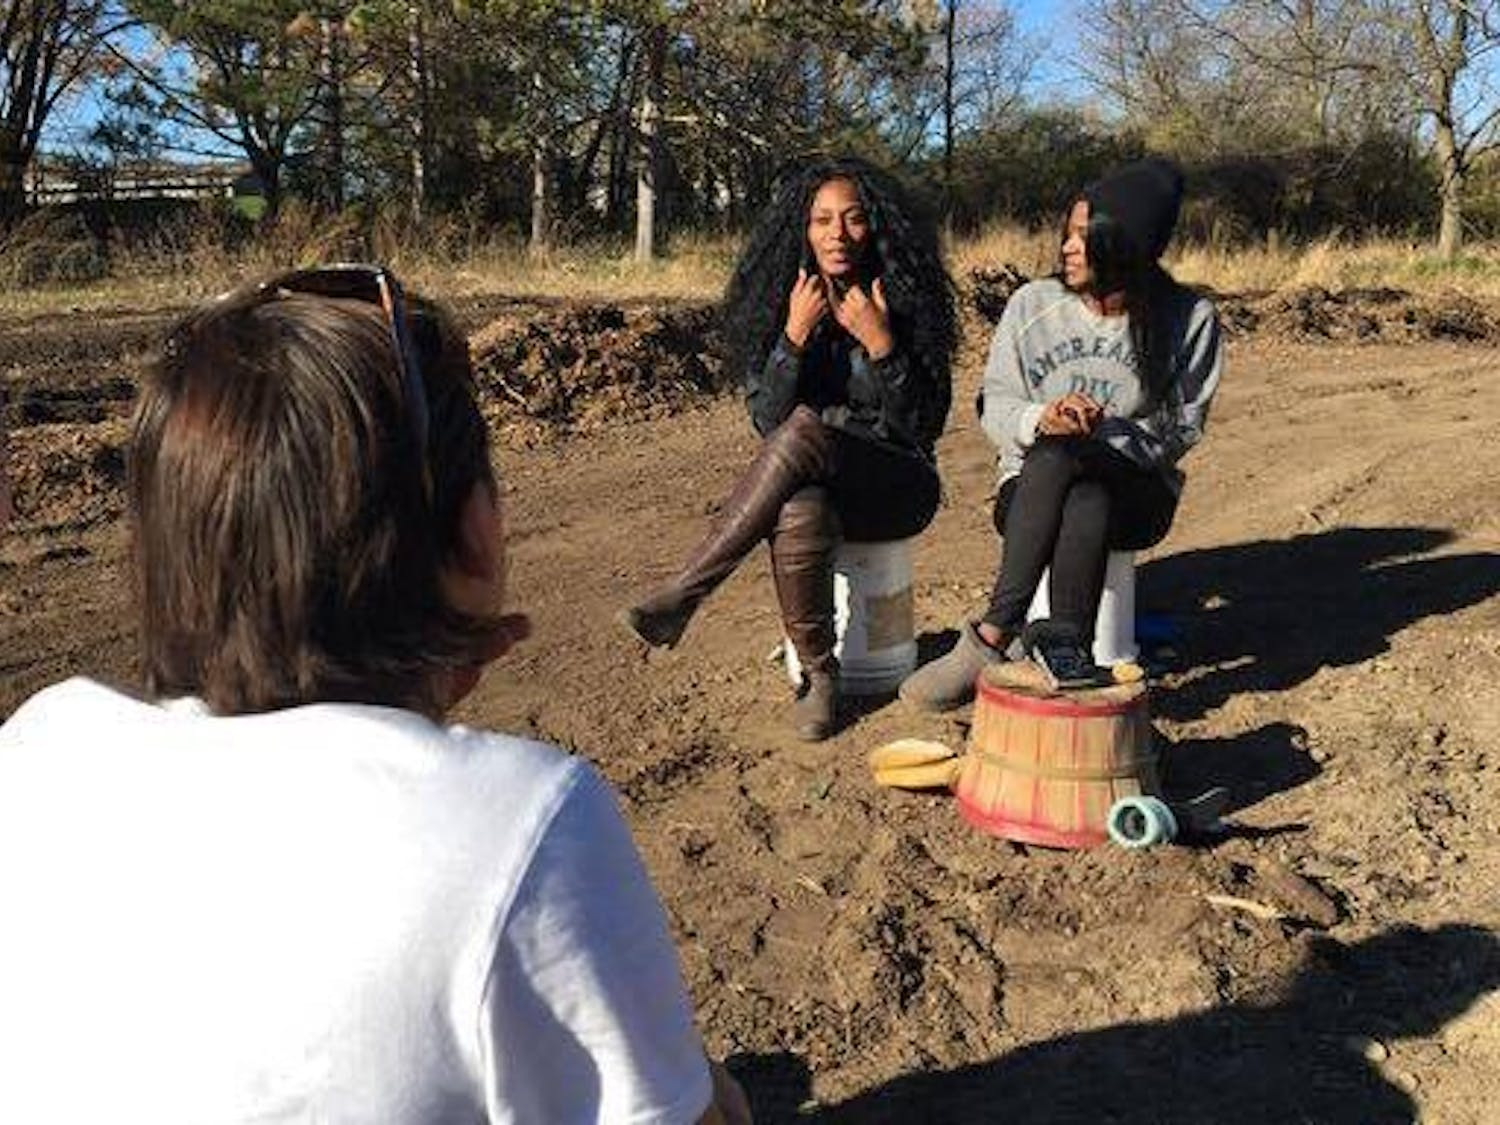 """Nyal Mueenuddinn and Mattie Naythons interviewed subjects for their film """"Break the Cycle,"""" a documentary they created for a course that focuses on the connections between food insecurity and racial inequality."""